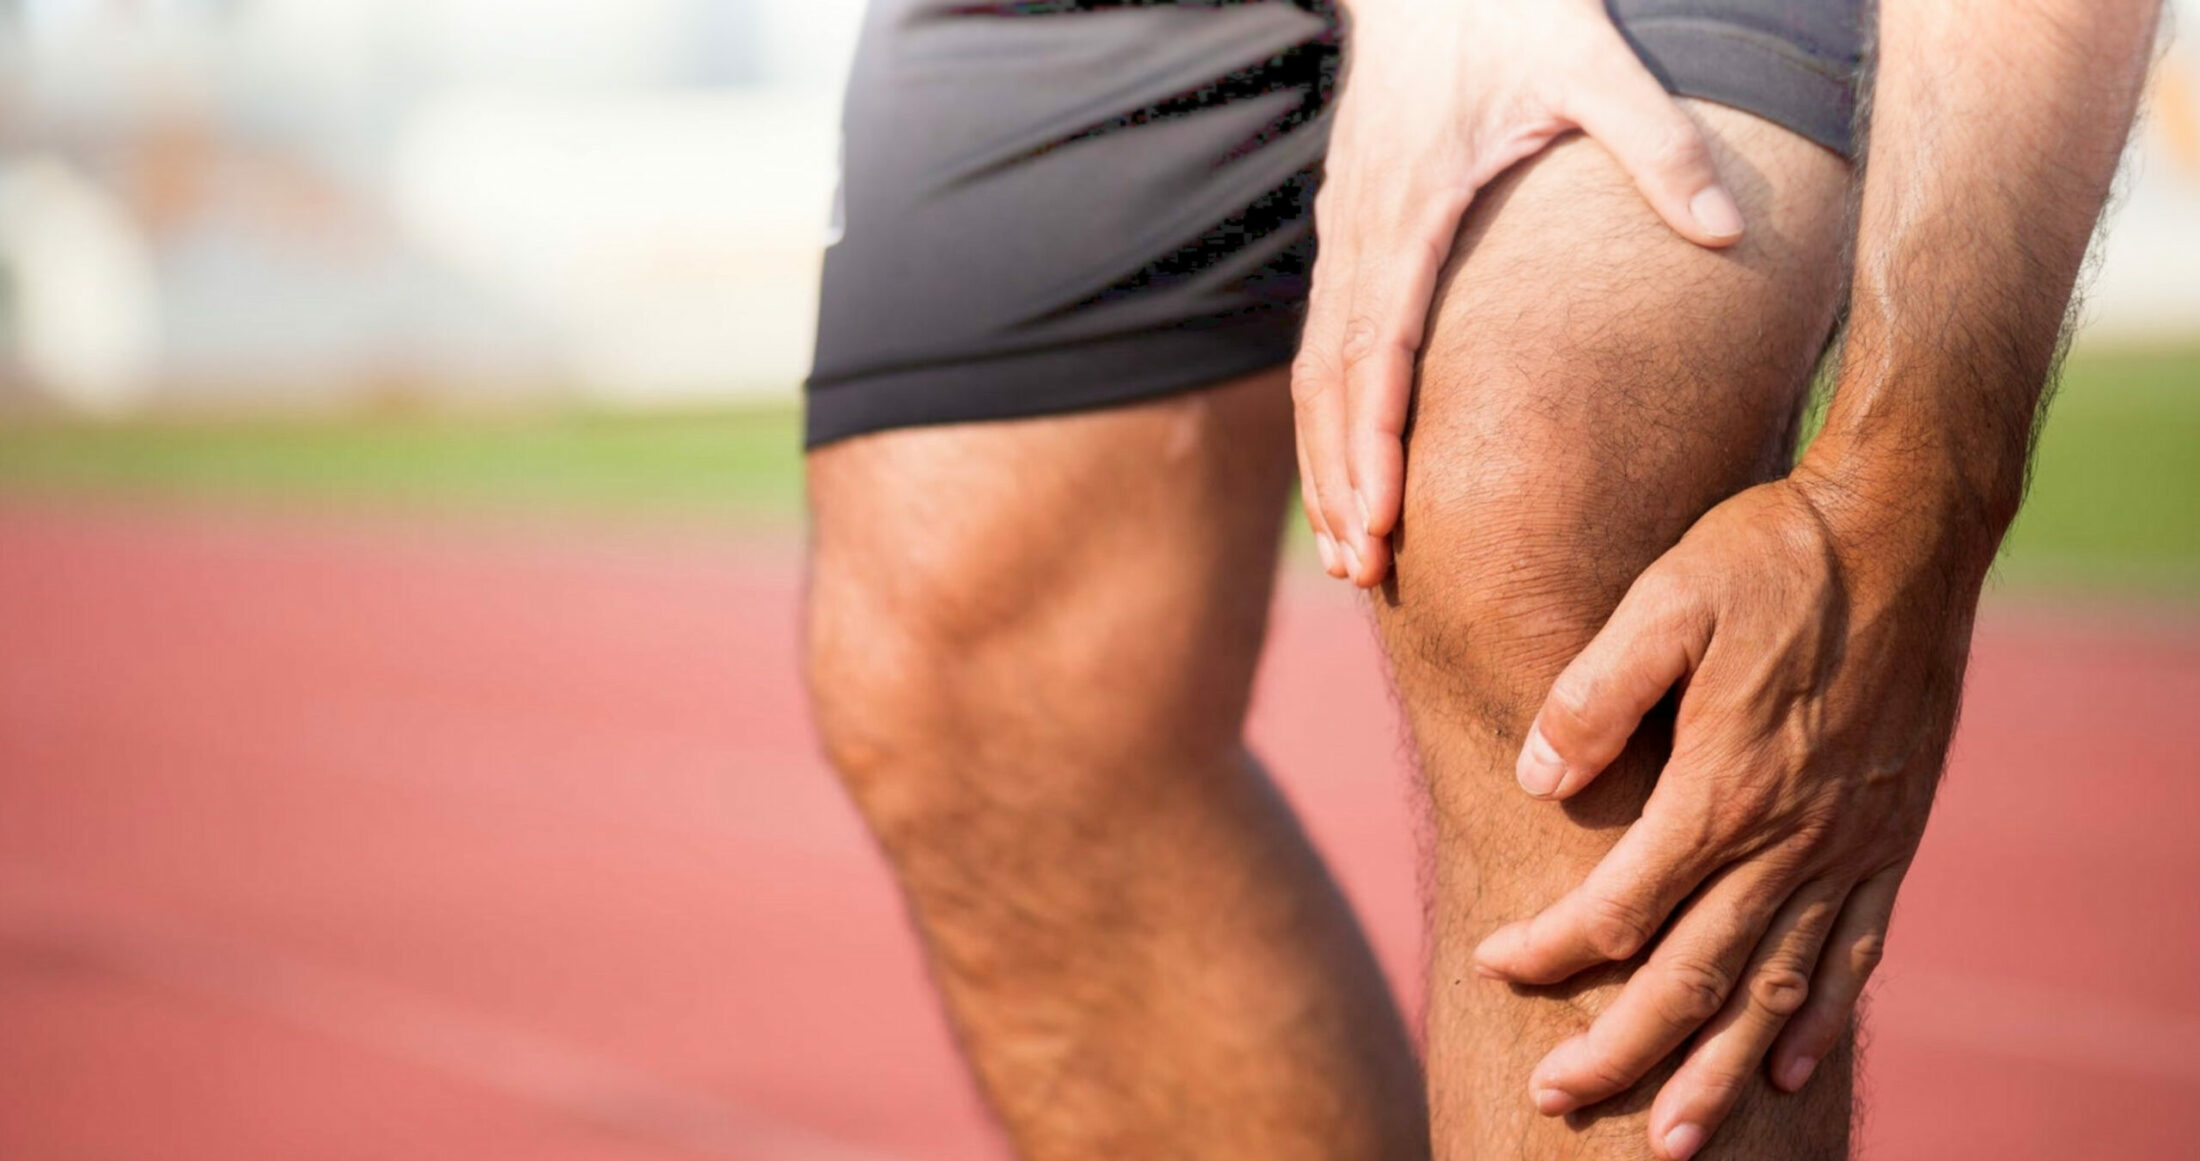 man holding his knee in pain due to runners knee or patellofemoral syndrome